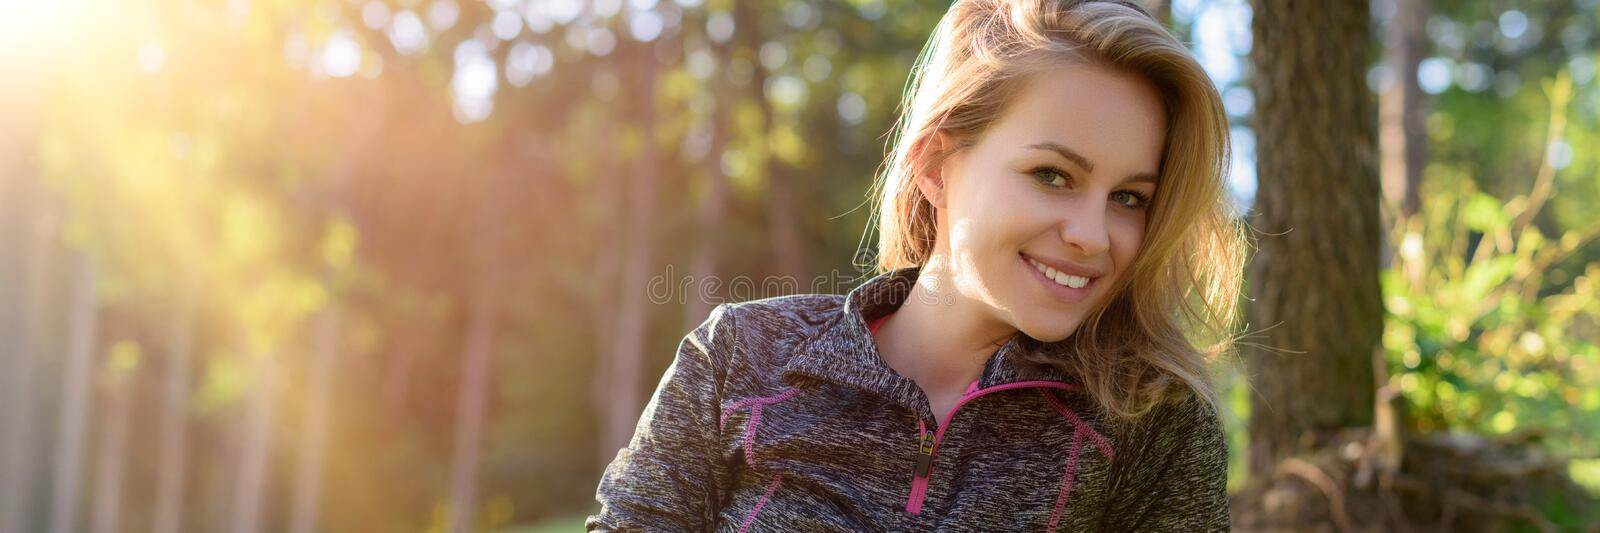 Attractive smiling young blond woman, wearing sportswear, relaxing after workout in a forest. royalty free stock photos